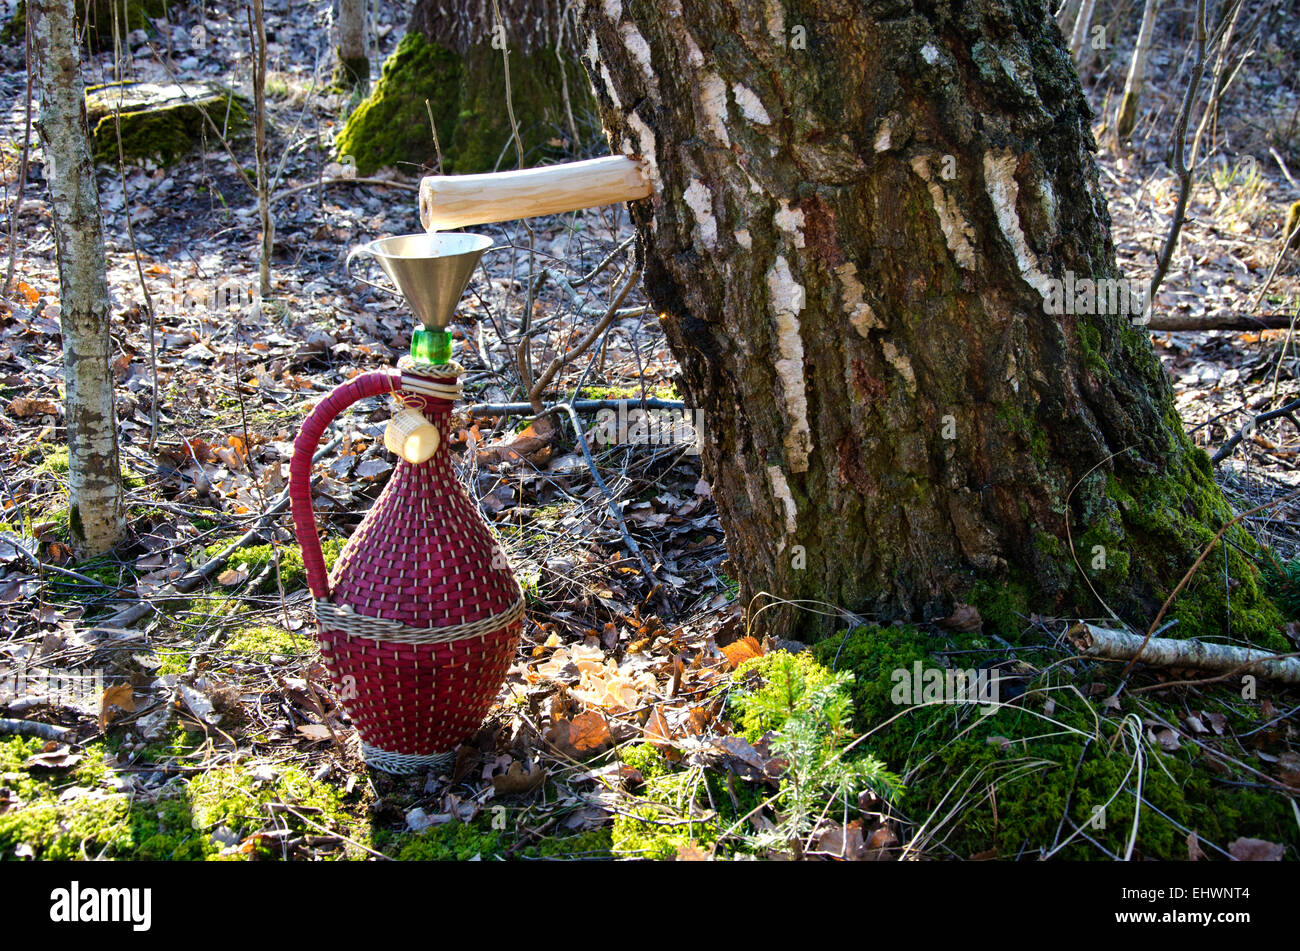 vintage wicker wine bottle and birch tree with spigot and sap drops - Stock Image